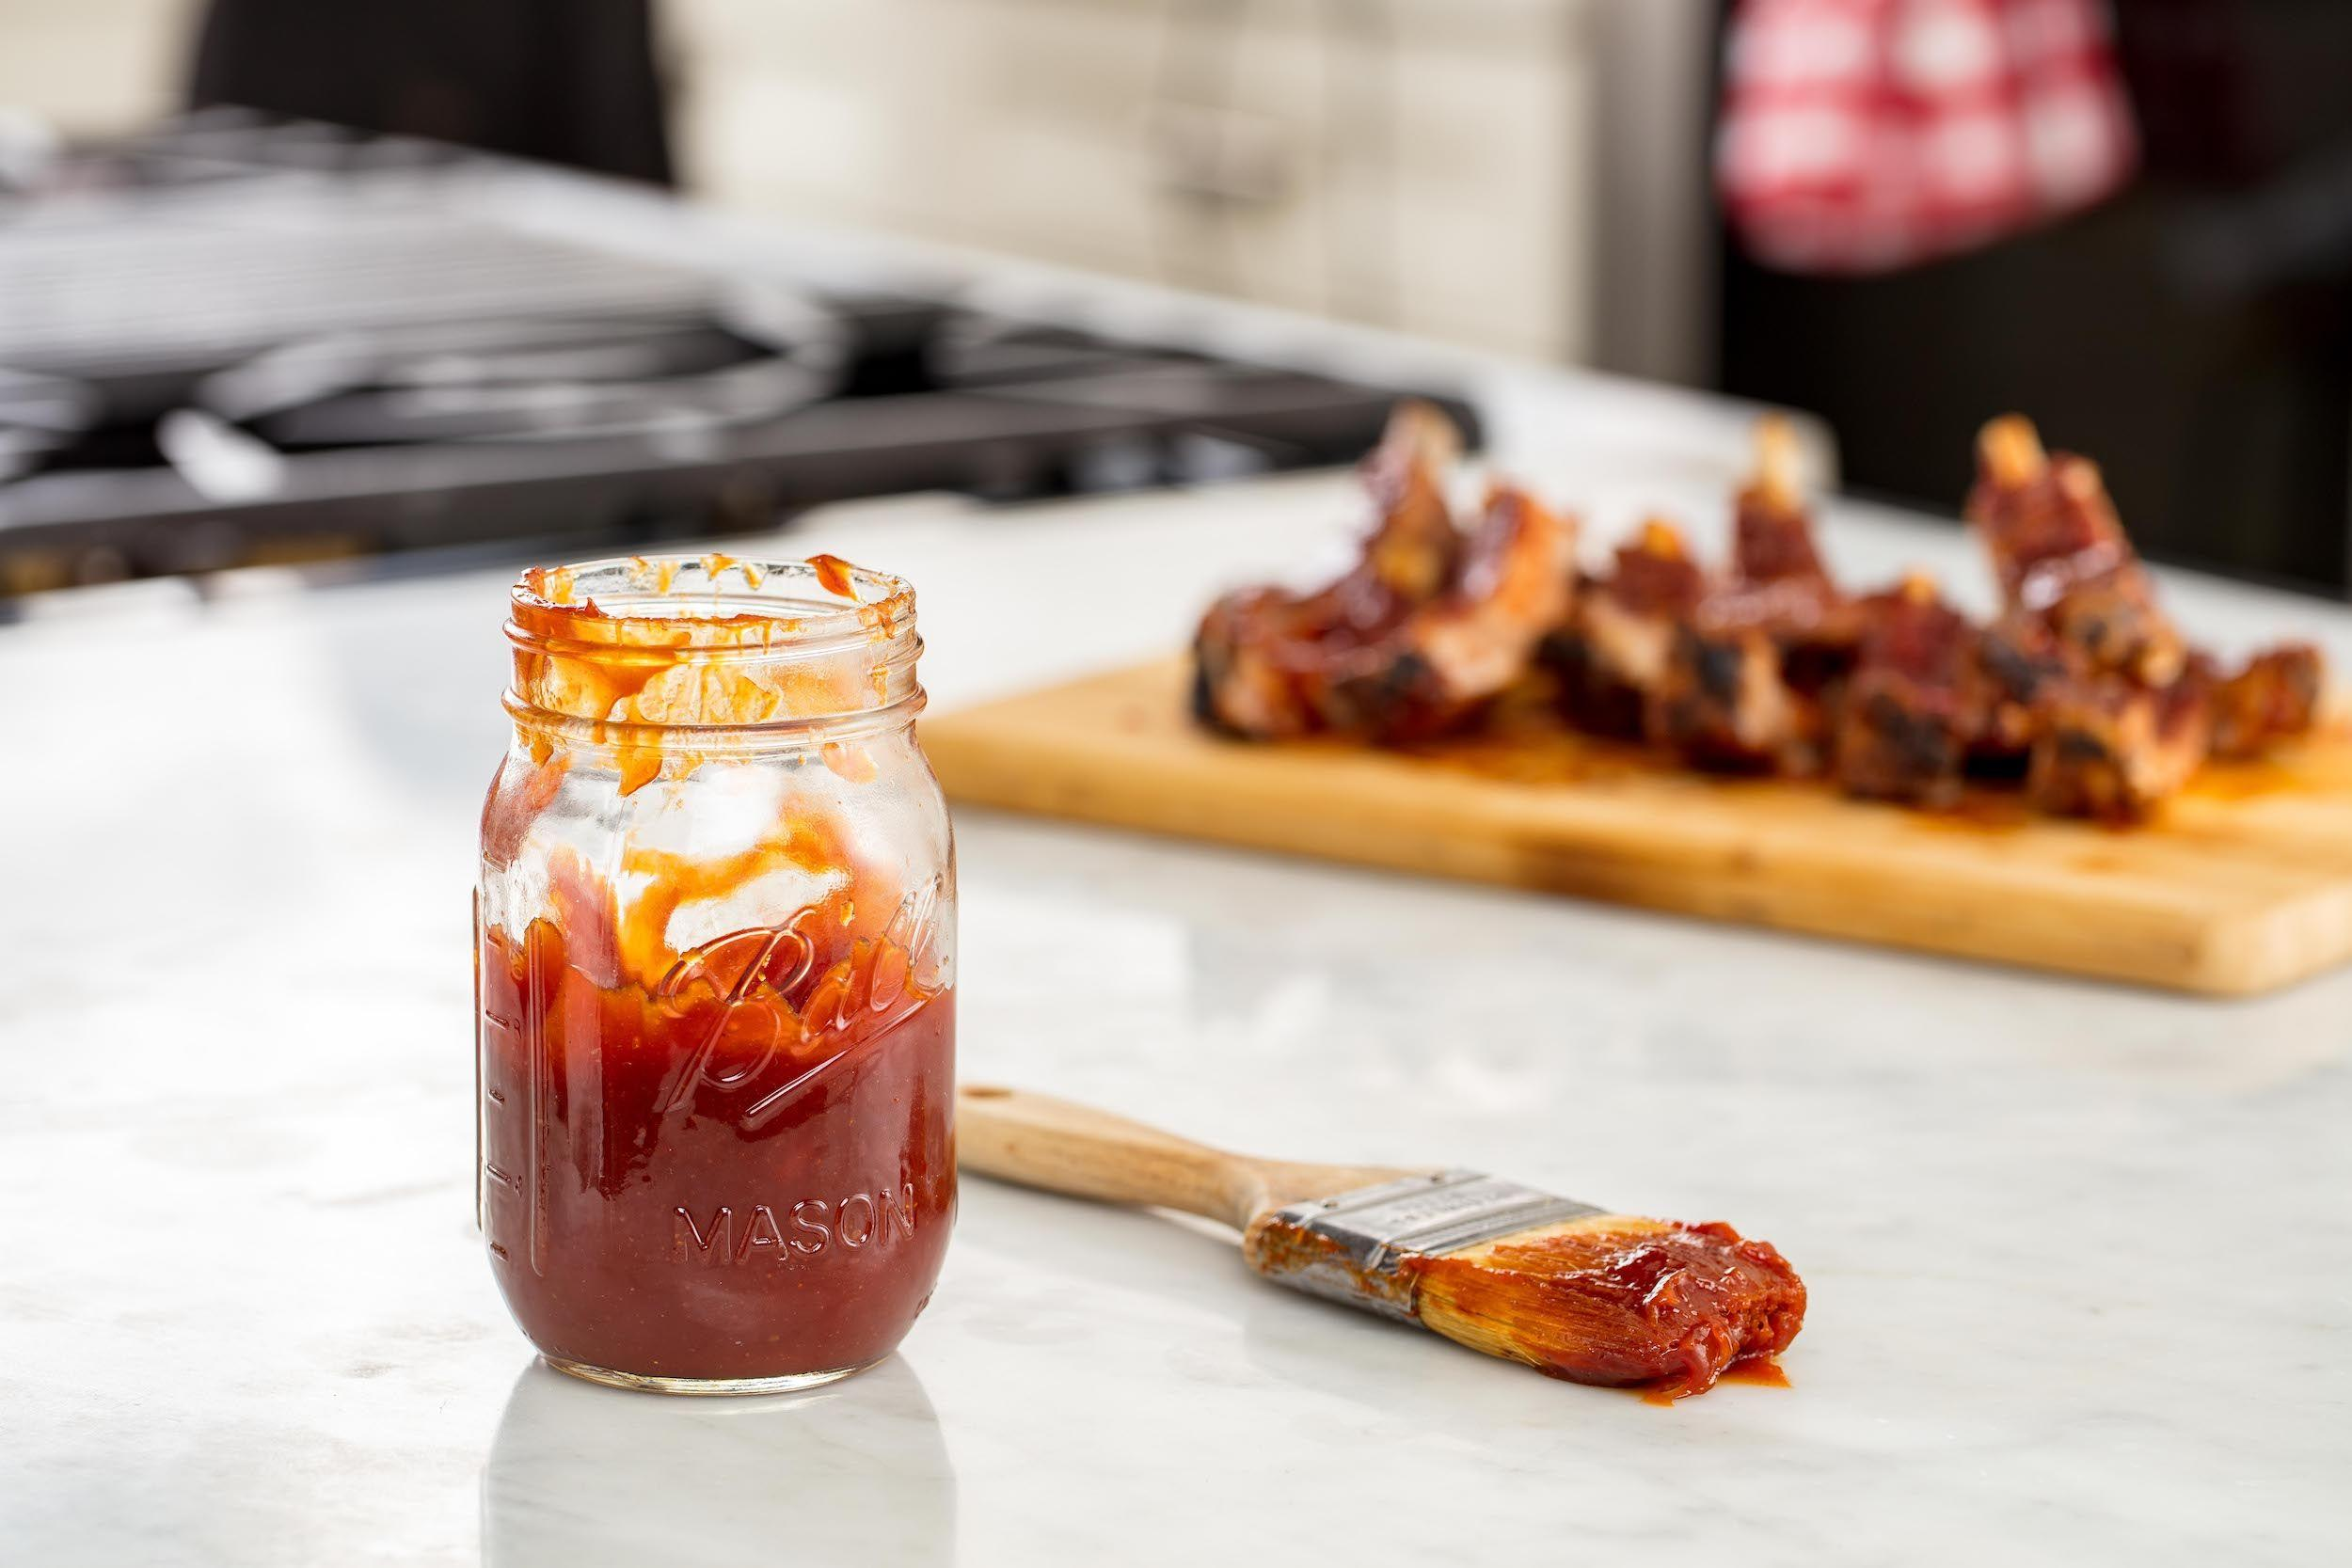 """<p>Next time you're grilling, skip the store-bought ketchup, mayo, and <a href=""""/cooking/g257/barbecue-sauce-recipes/"""" data-ylk=""""slk:BBQ sauce"""" class=""""link rapid-noclick-resp"""">BBQ sauce</a>, and start from scratch. It'll make your burgers, chicken wings, and even salads taste soo much better. Need some grilling inspiration? Try our <a href=""""/cooking/recipe-ideas/g2729/best-burger-recipes/"""" data-ylk=""""slk:best-ever burgers"""" class=""""link rapid-noclick-resp"""">best-ever burgers</a>.</p>"""